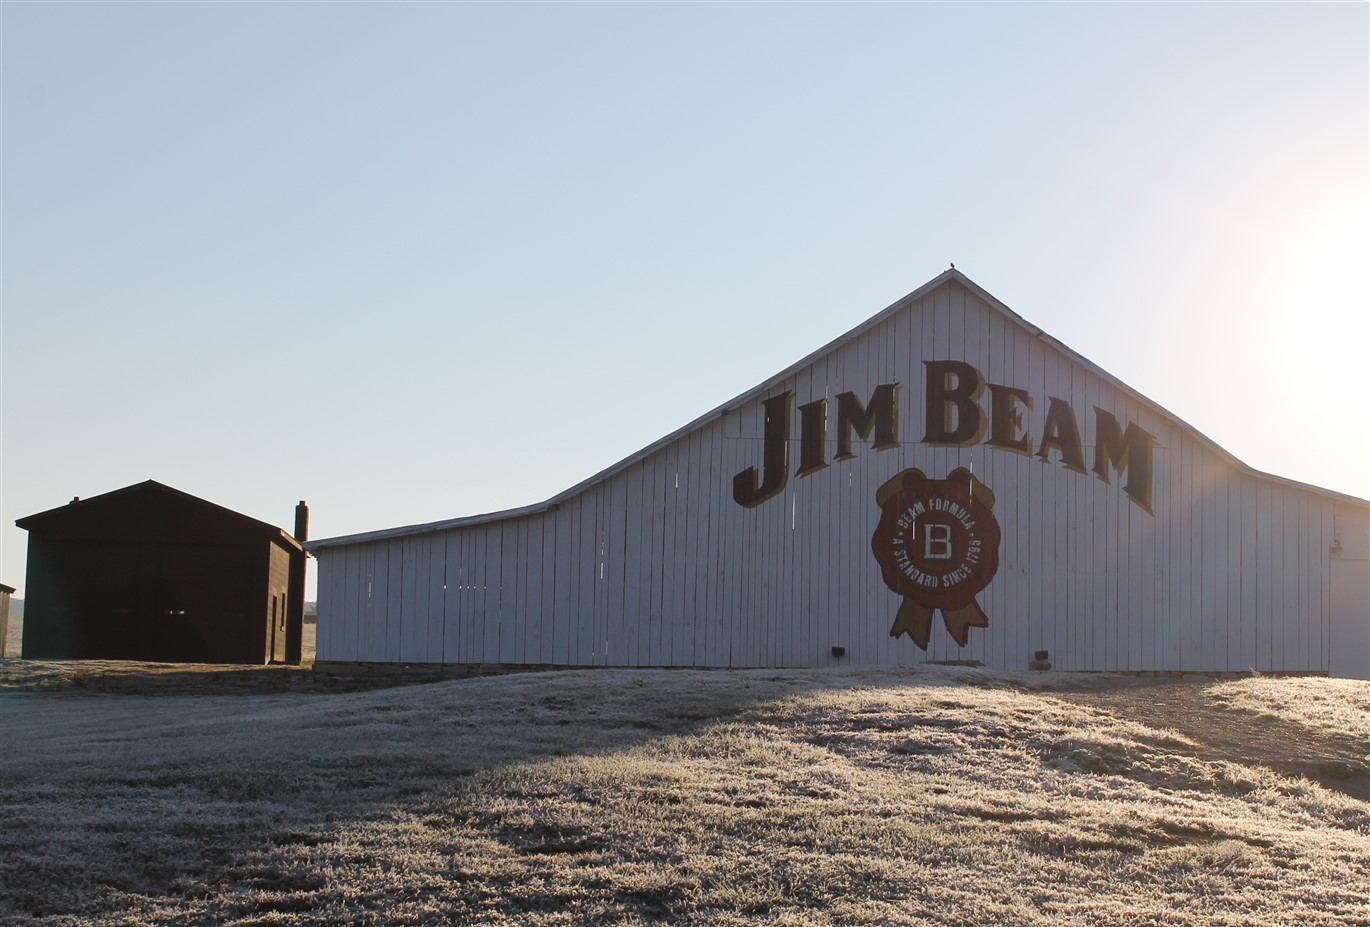 2013 10 26 1 Jim Beam Tour Clermont KY.jpg